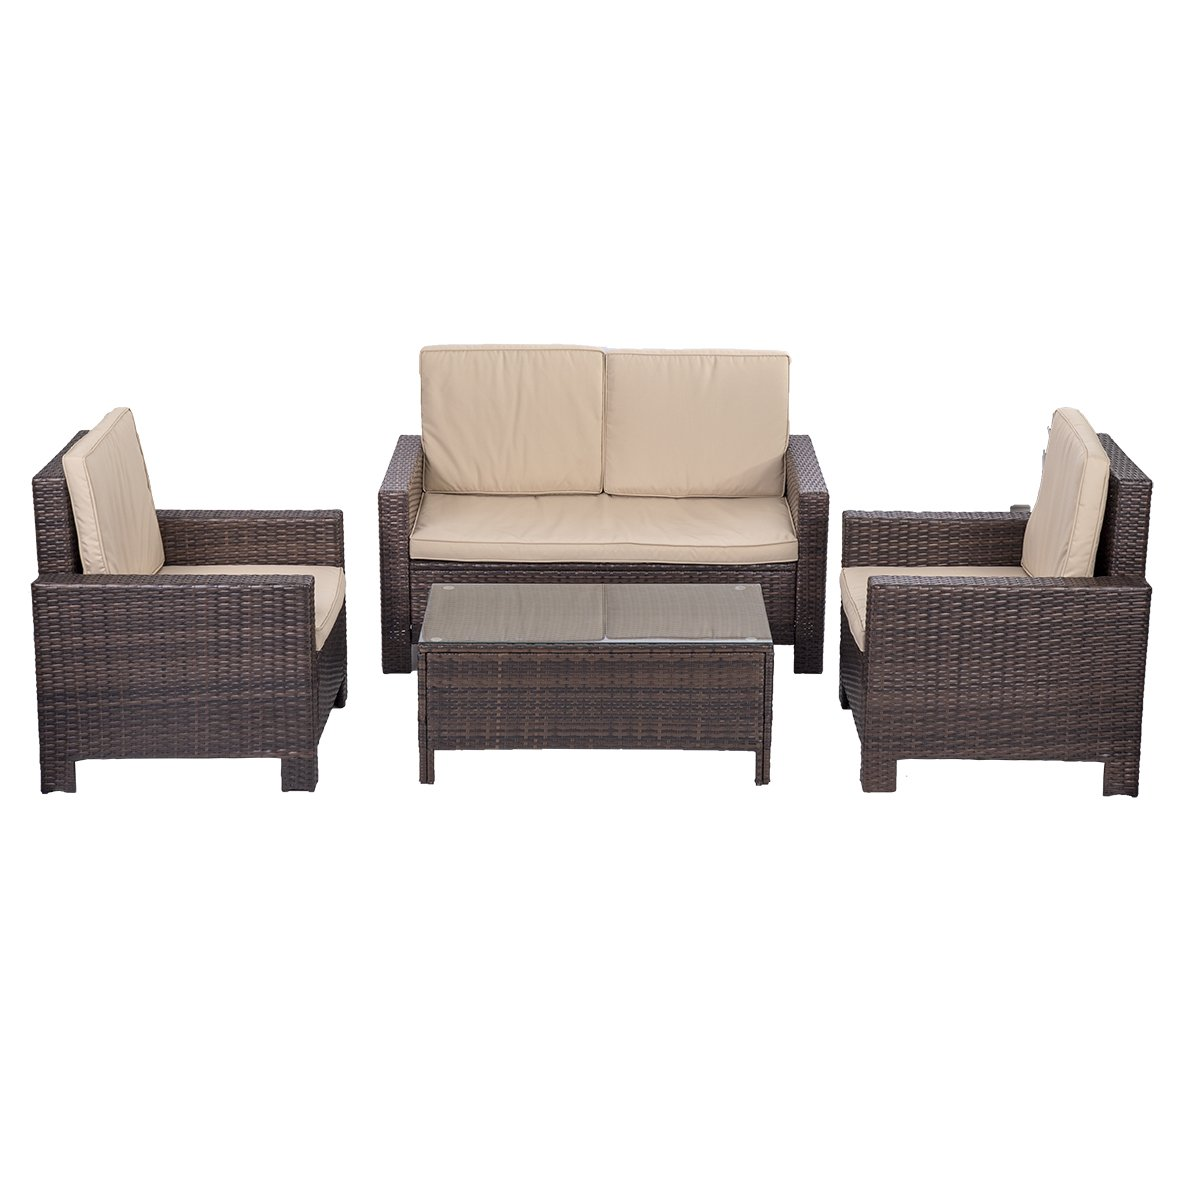 Amazon.com : Outdoor Patio Sofa Set Sectional Furniture PE Wicker Rattan Deck  Couch : Patio, Lawn U0026 Garden